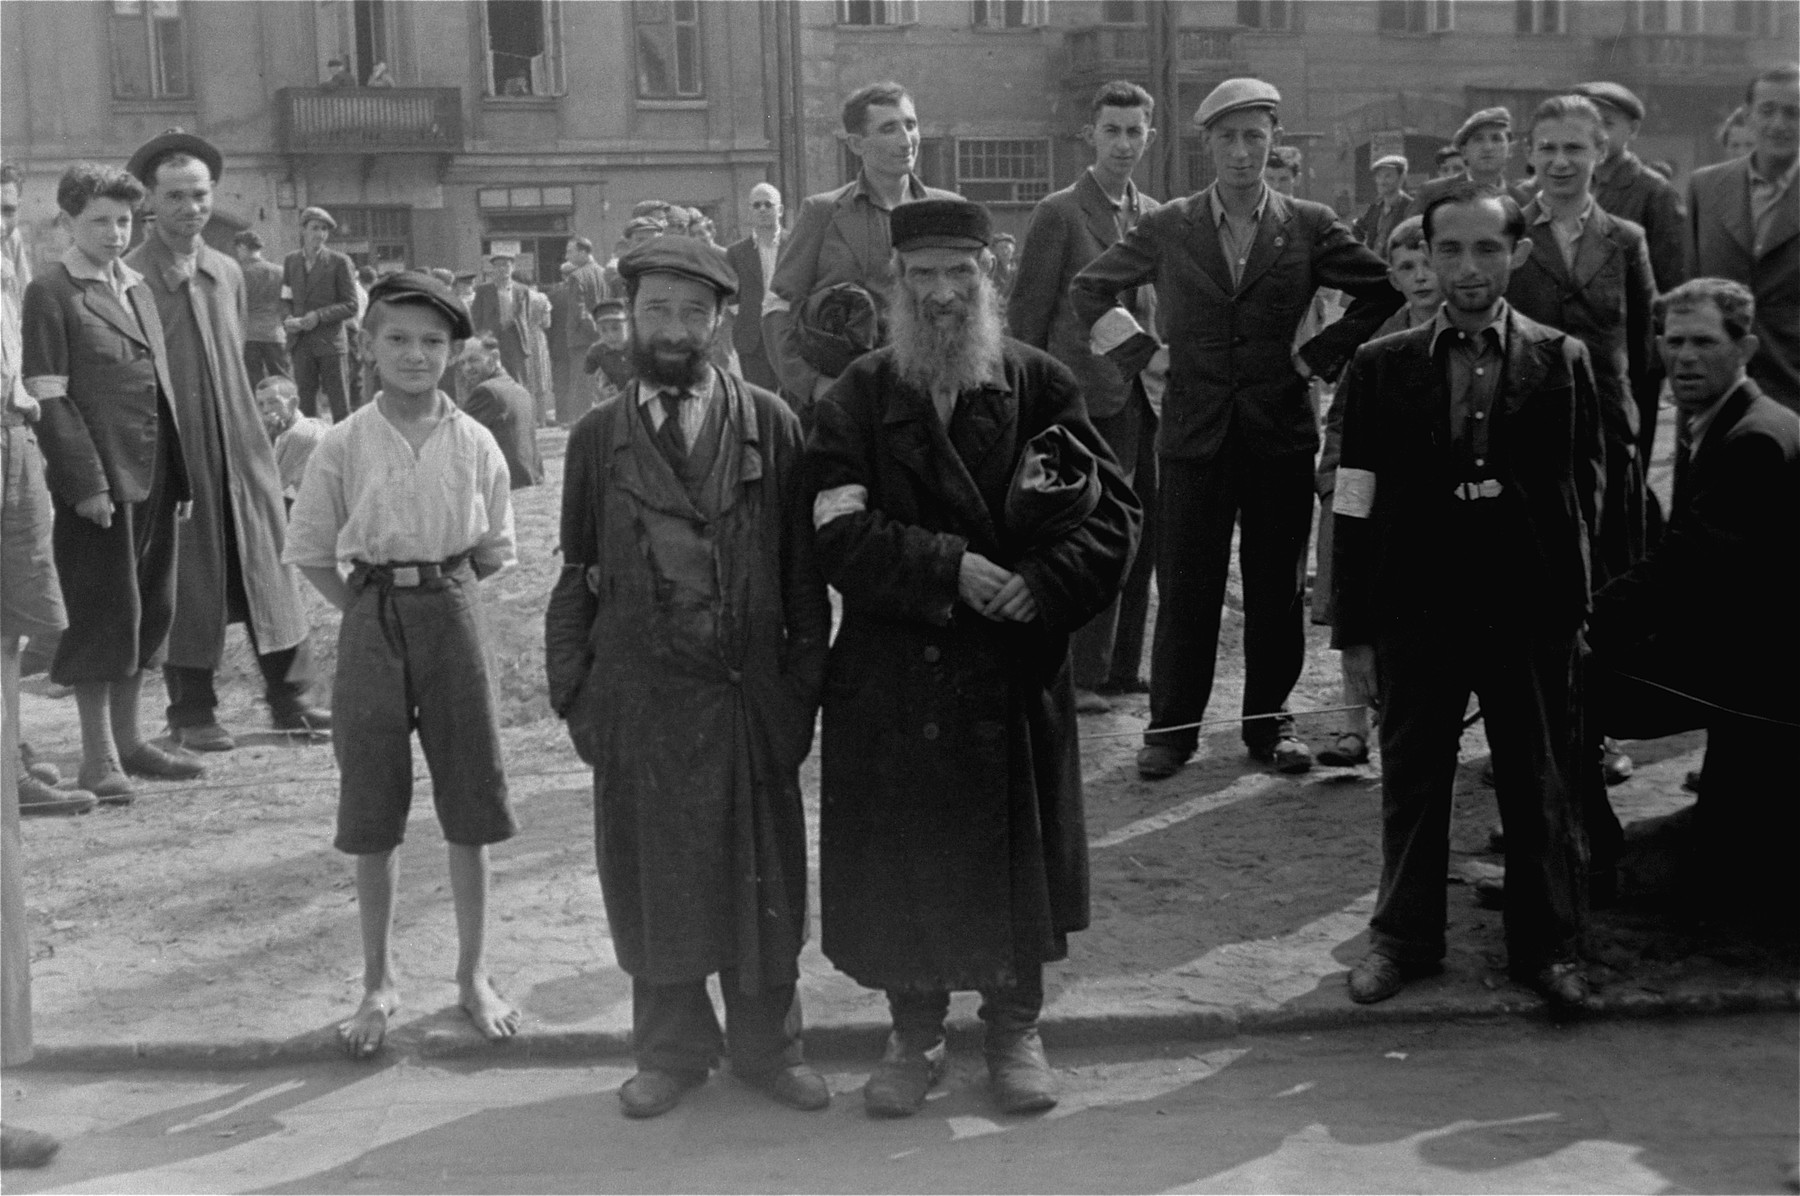 Jewish men and youth are gathered in an open area in the Warsaw ghetto.